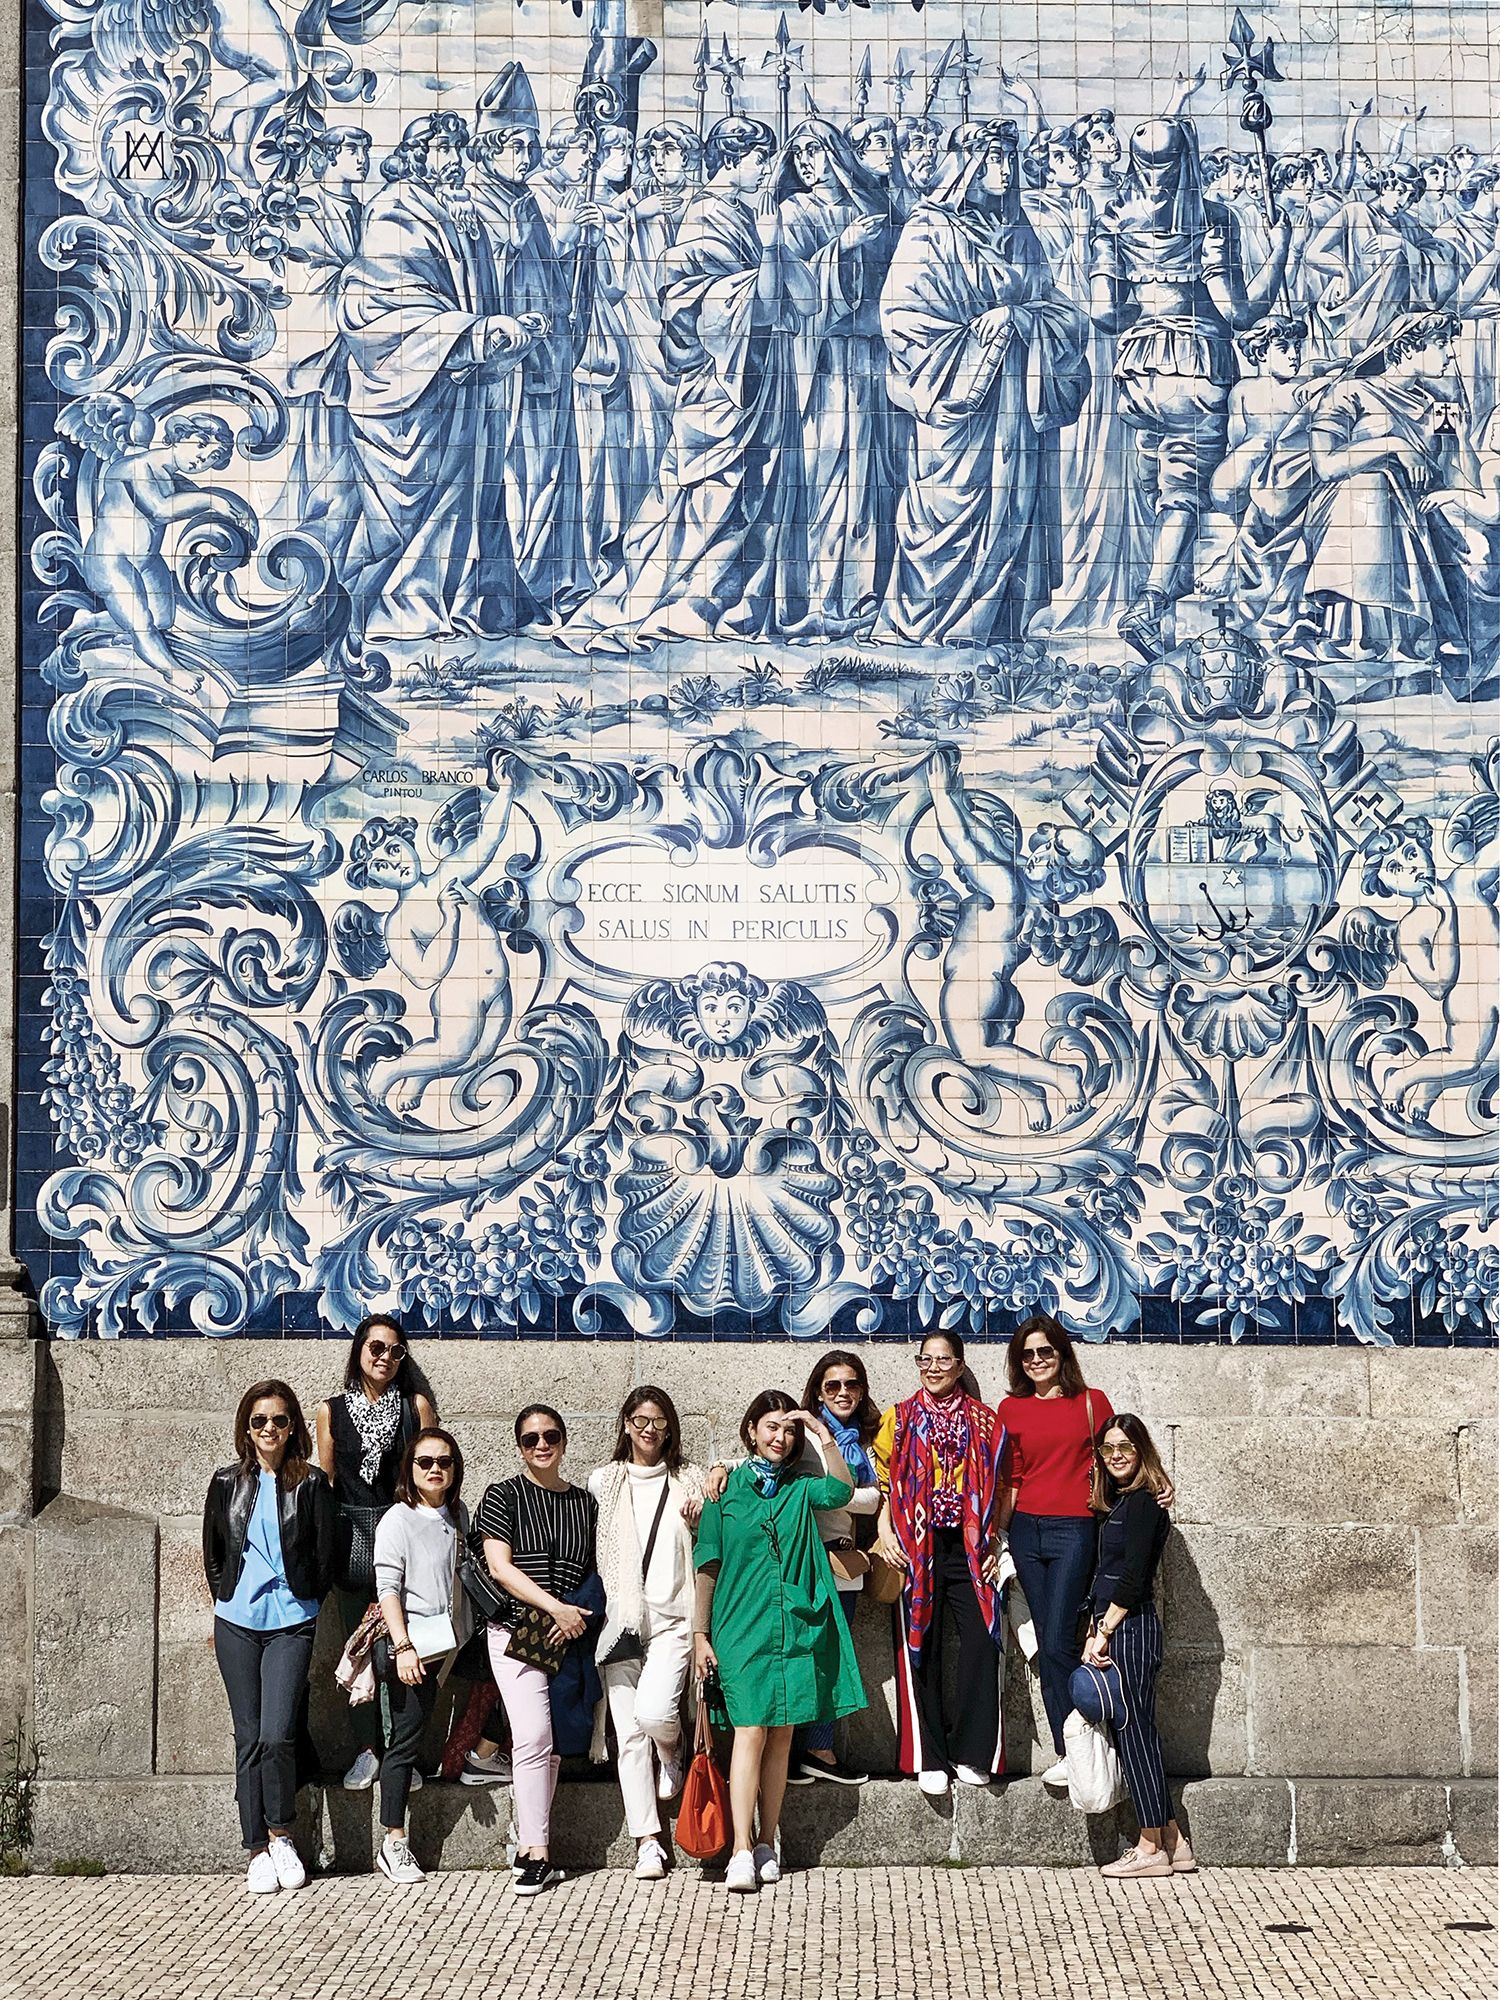 Anton San Diego And The #FiftyPlusGoingTo Group Share Their Fondest Memories In Scenic Portugal